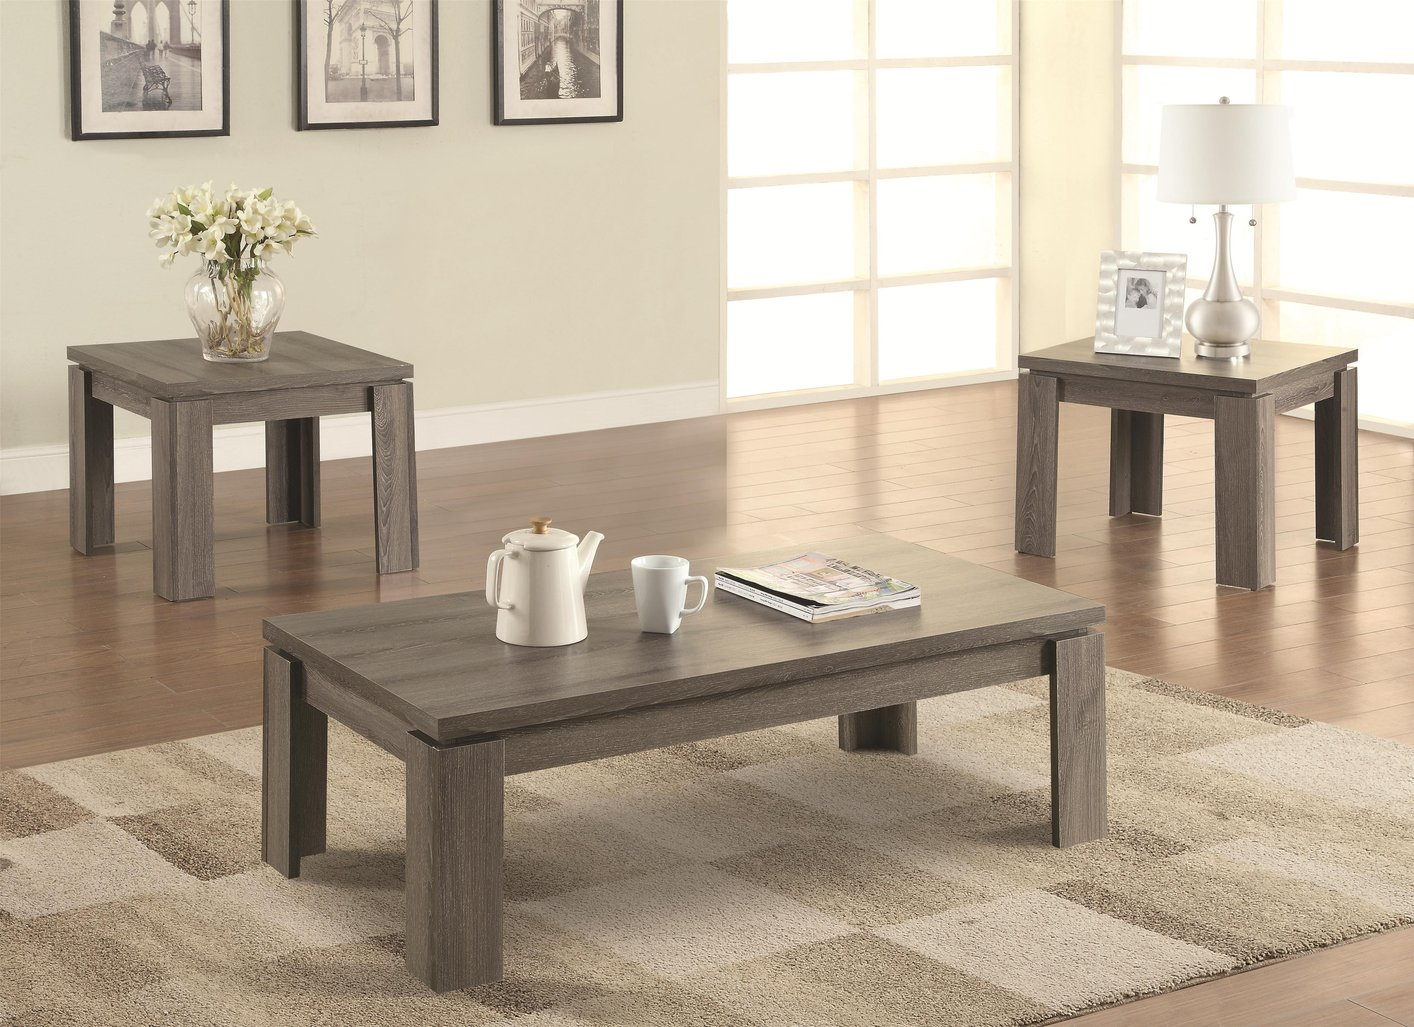 Grey Wood Coffee Table Set Steal A Sofa Furniture Outlet Los Angeles Ca